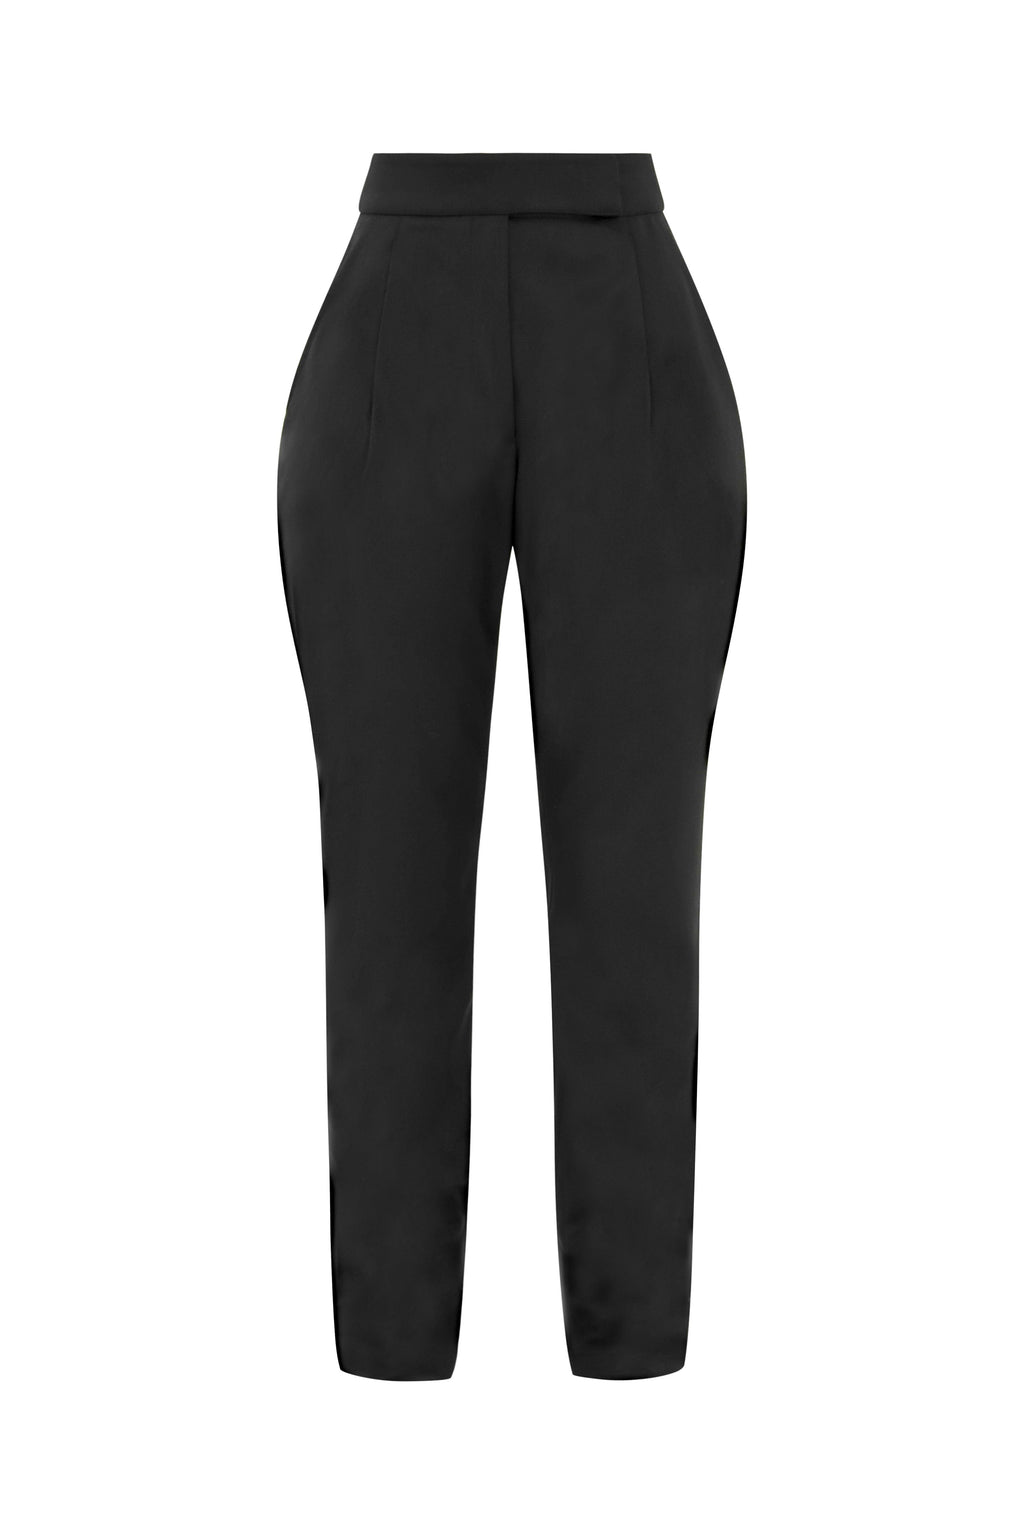 Ahead of Schedule High-Rise Peg Trousers - Tia Dorraine London